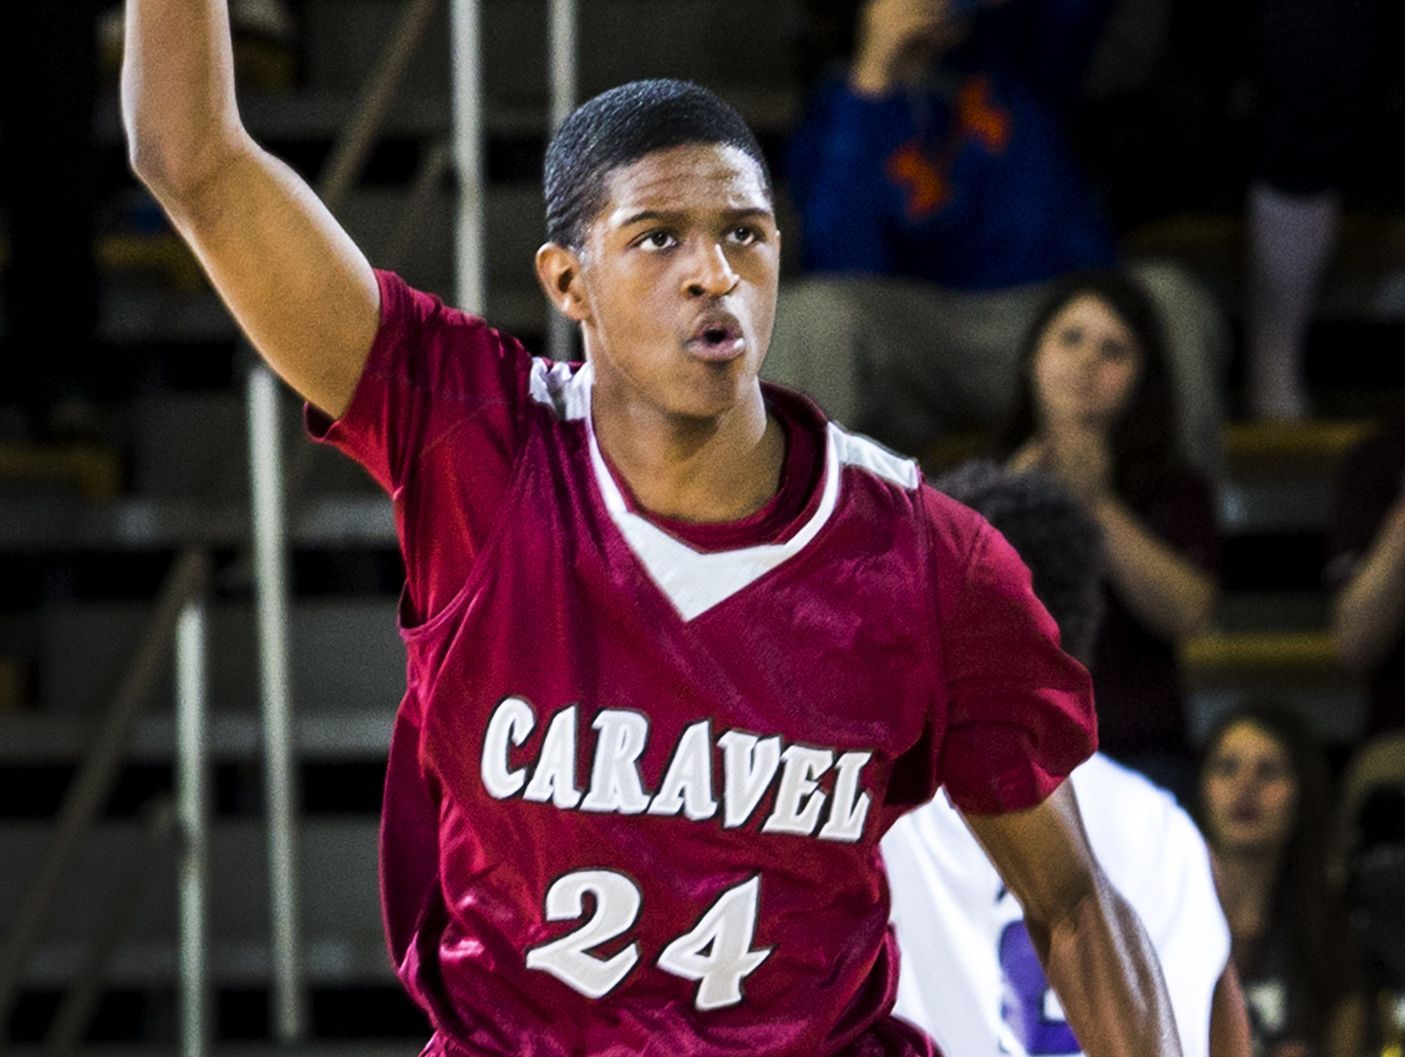 Caravel's O'Koye Parker celebrates after hitting a three in the second half of Caravel Academy's 48-47 win over St. Thomas More Academy in the DIAA Boy's State Basketball Tournament semi-finals at the Bob Carpenter Center in Newark on Thursday evening.